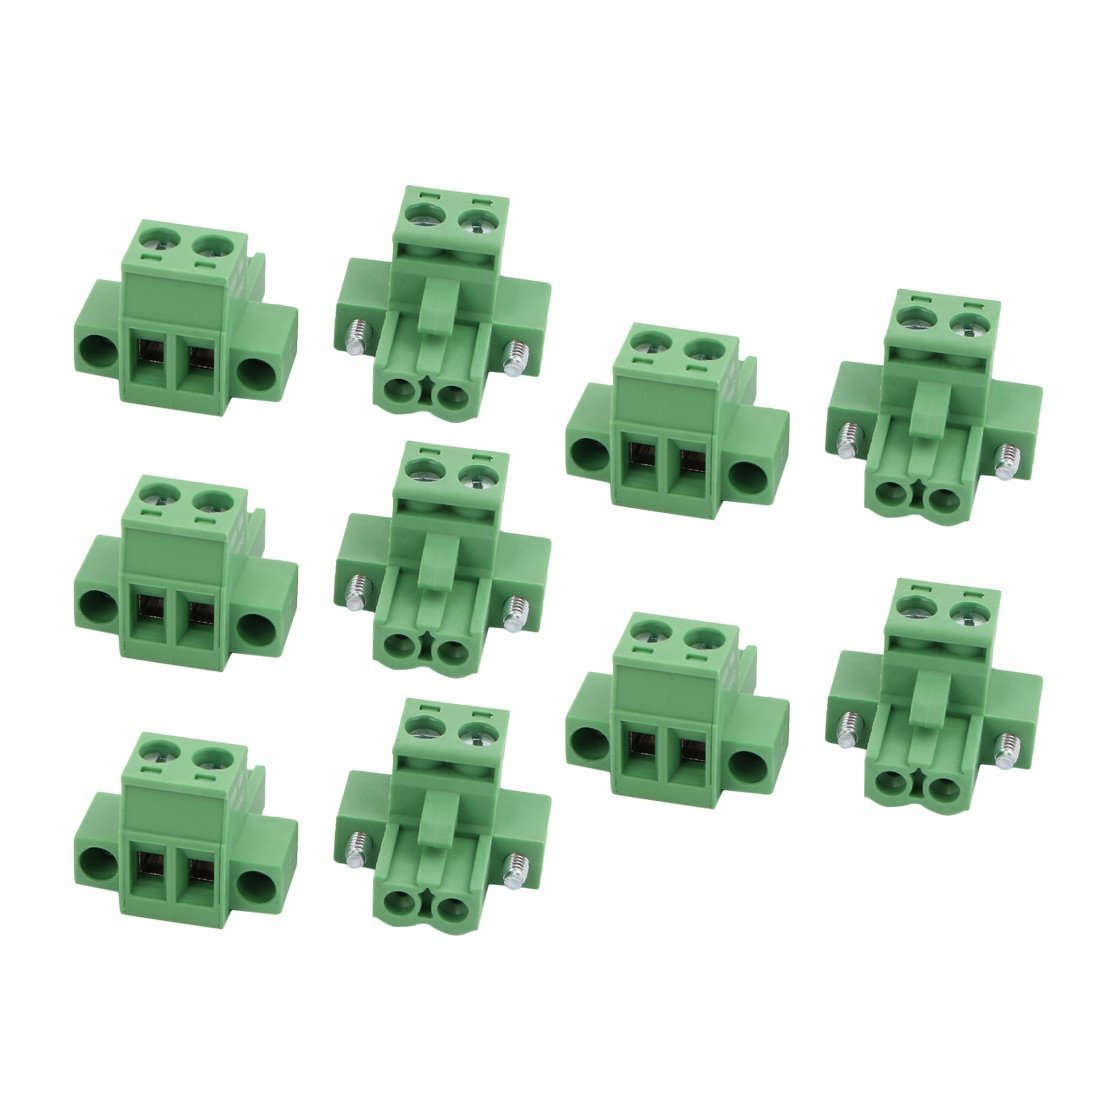 uxcell 10Pcs AC 300V 15A 5.0mm Pitch 2P Terminal Block Wire Connection for PCB Mounting